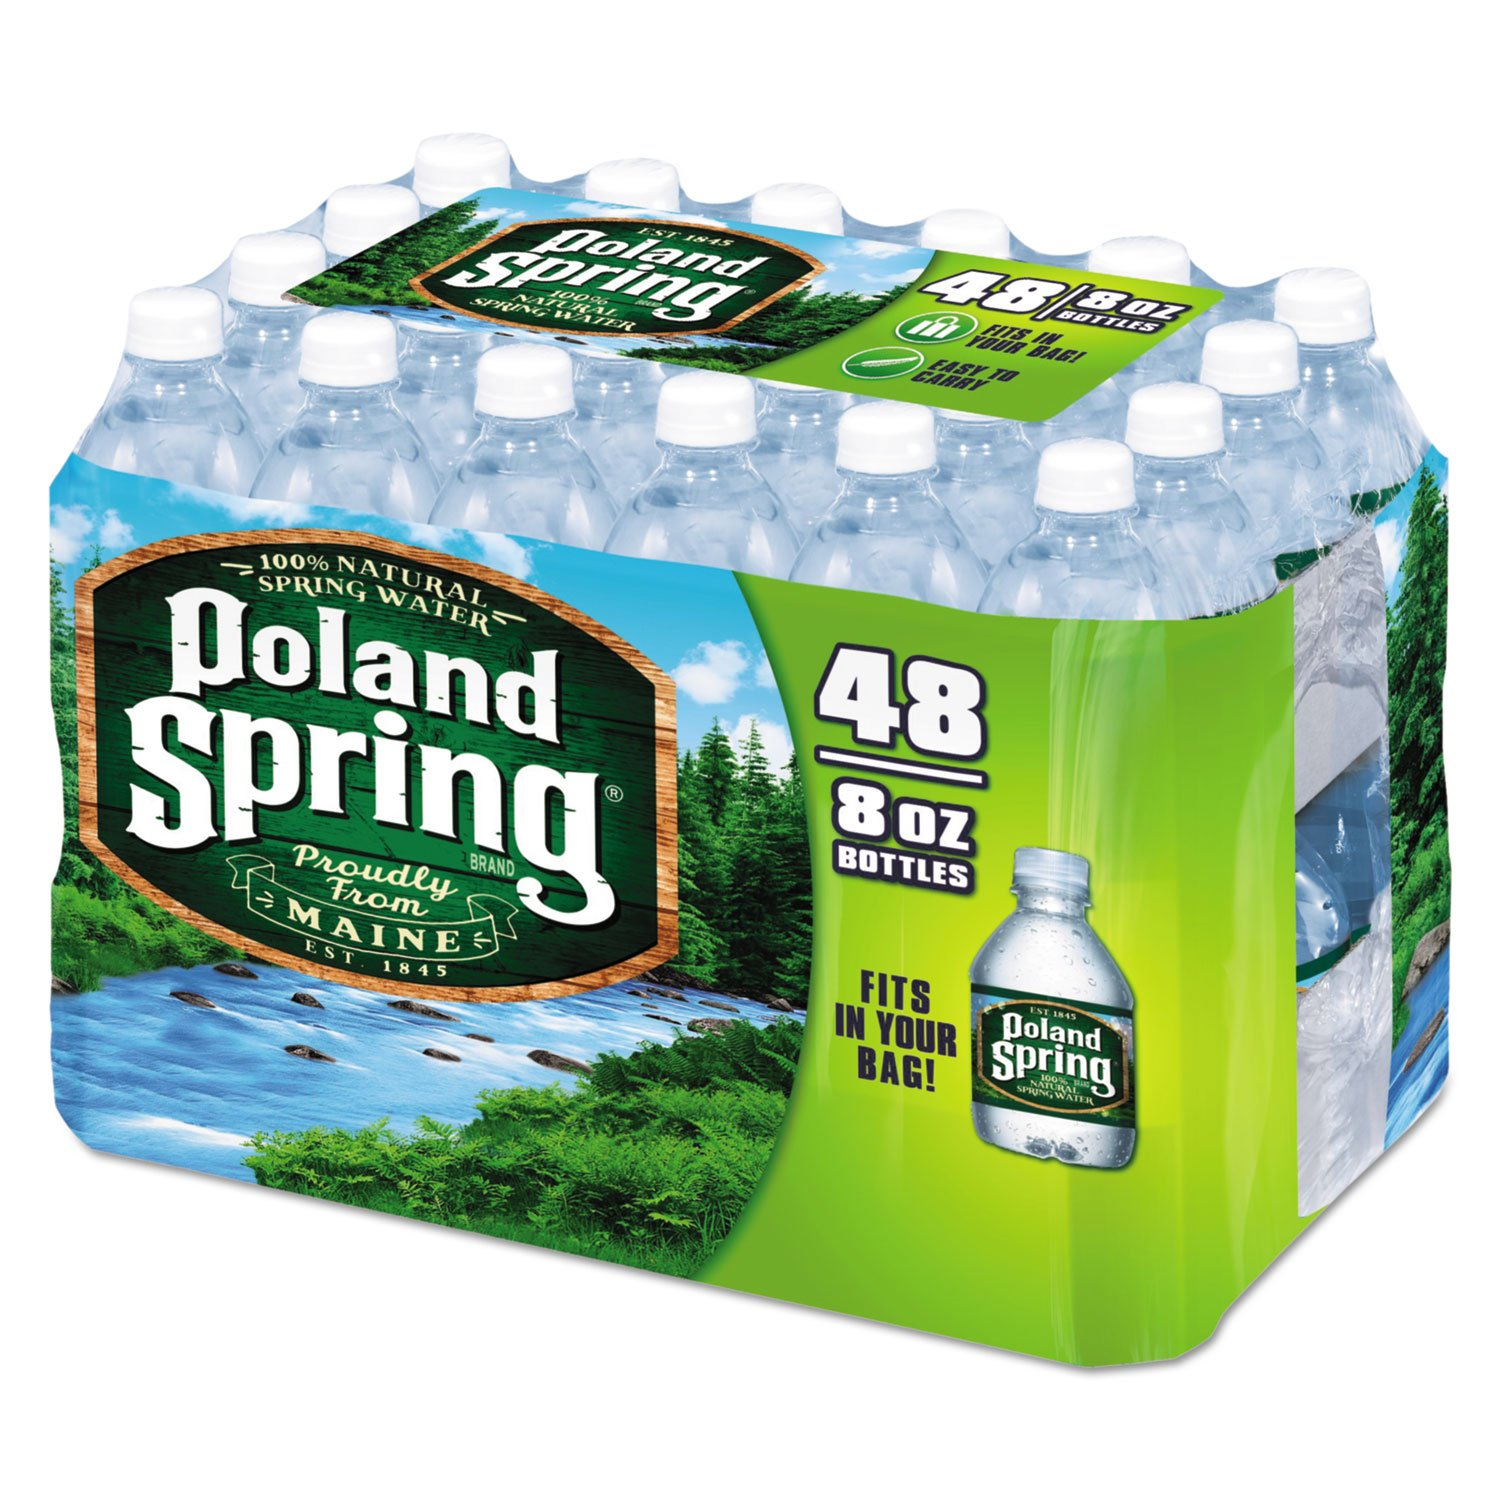 Poland Springs Original Water, 8 Ounce - 48 per case.